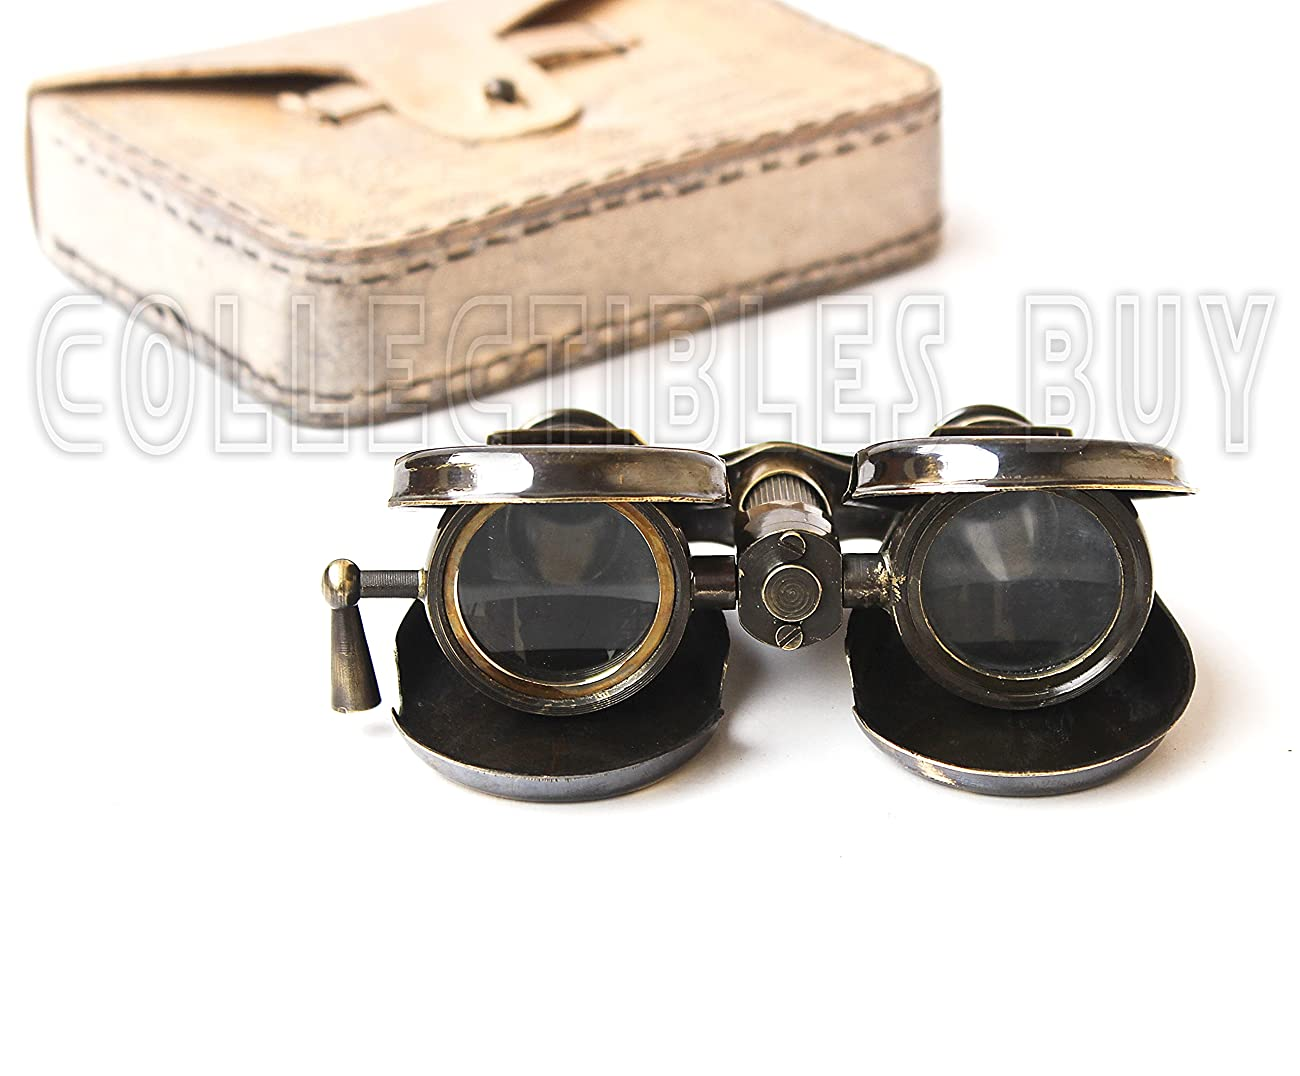 Classic Marine Spy Glass Antique London 1857 R & J Beck Brass Binocular Collectibles Gift 3